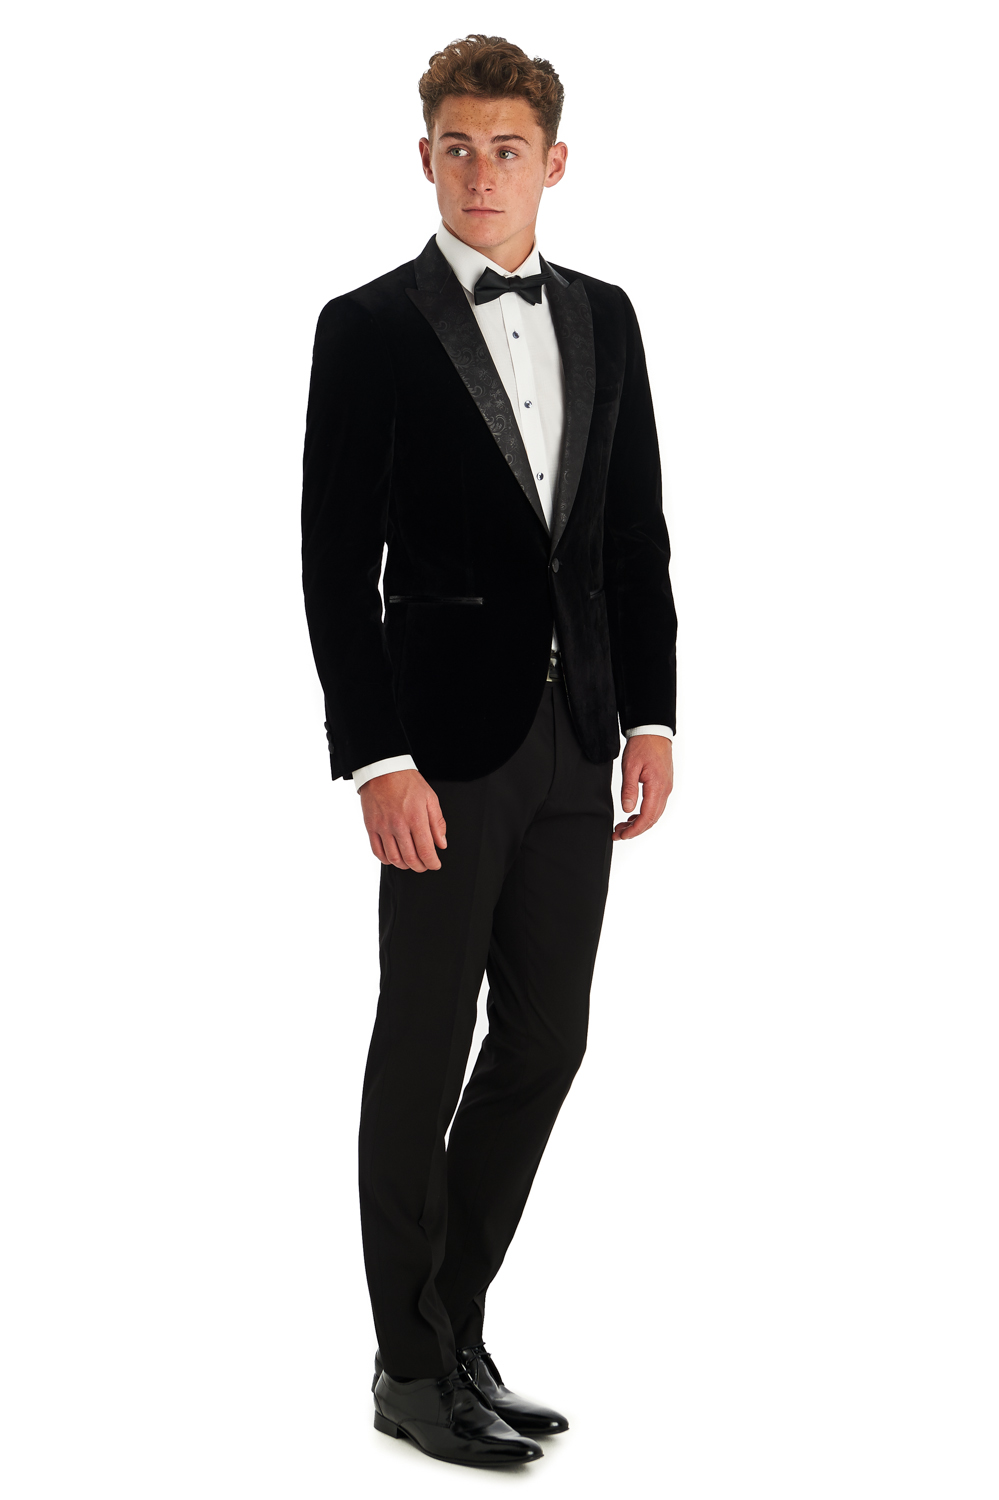 Shop for black velvet jacket mens online at Target. Free shipping on purchases over $35 and save 5% every day with your Target REDcard.